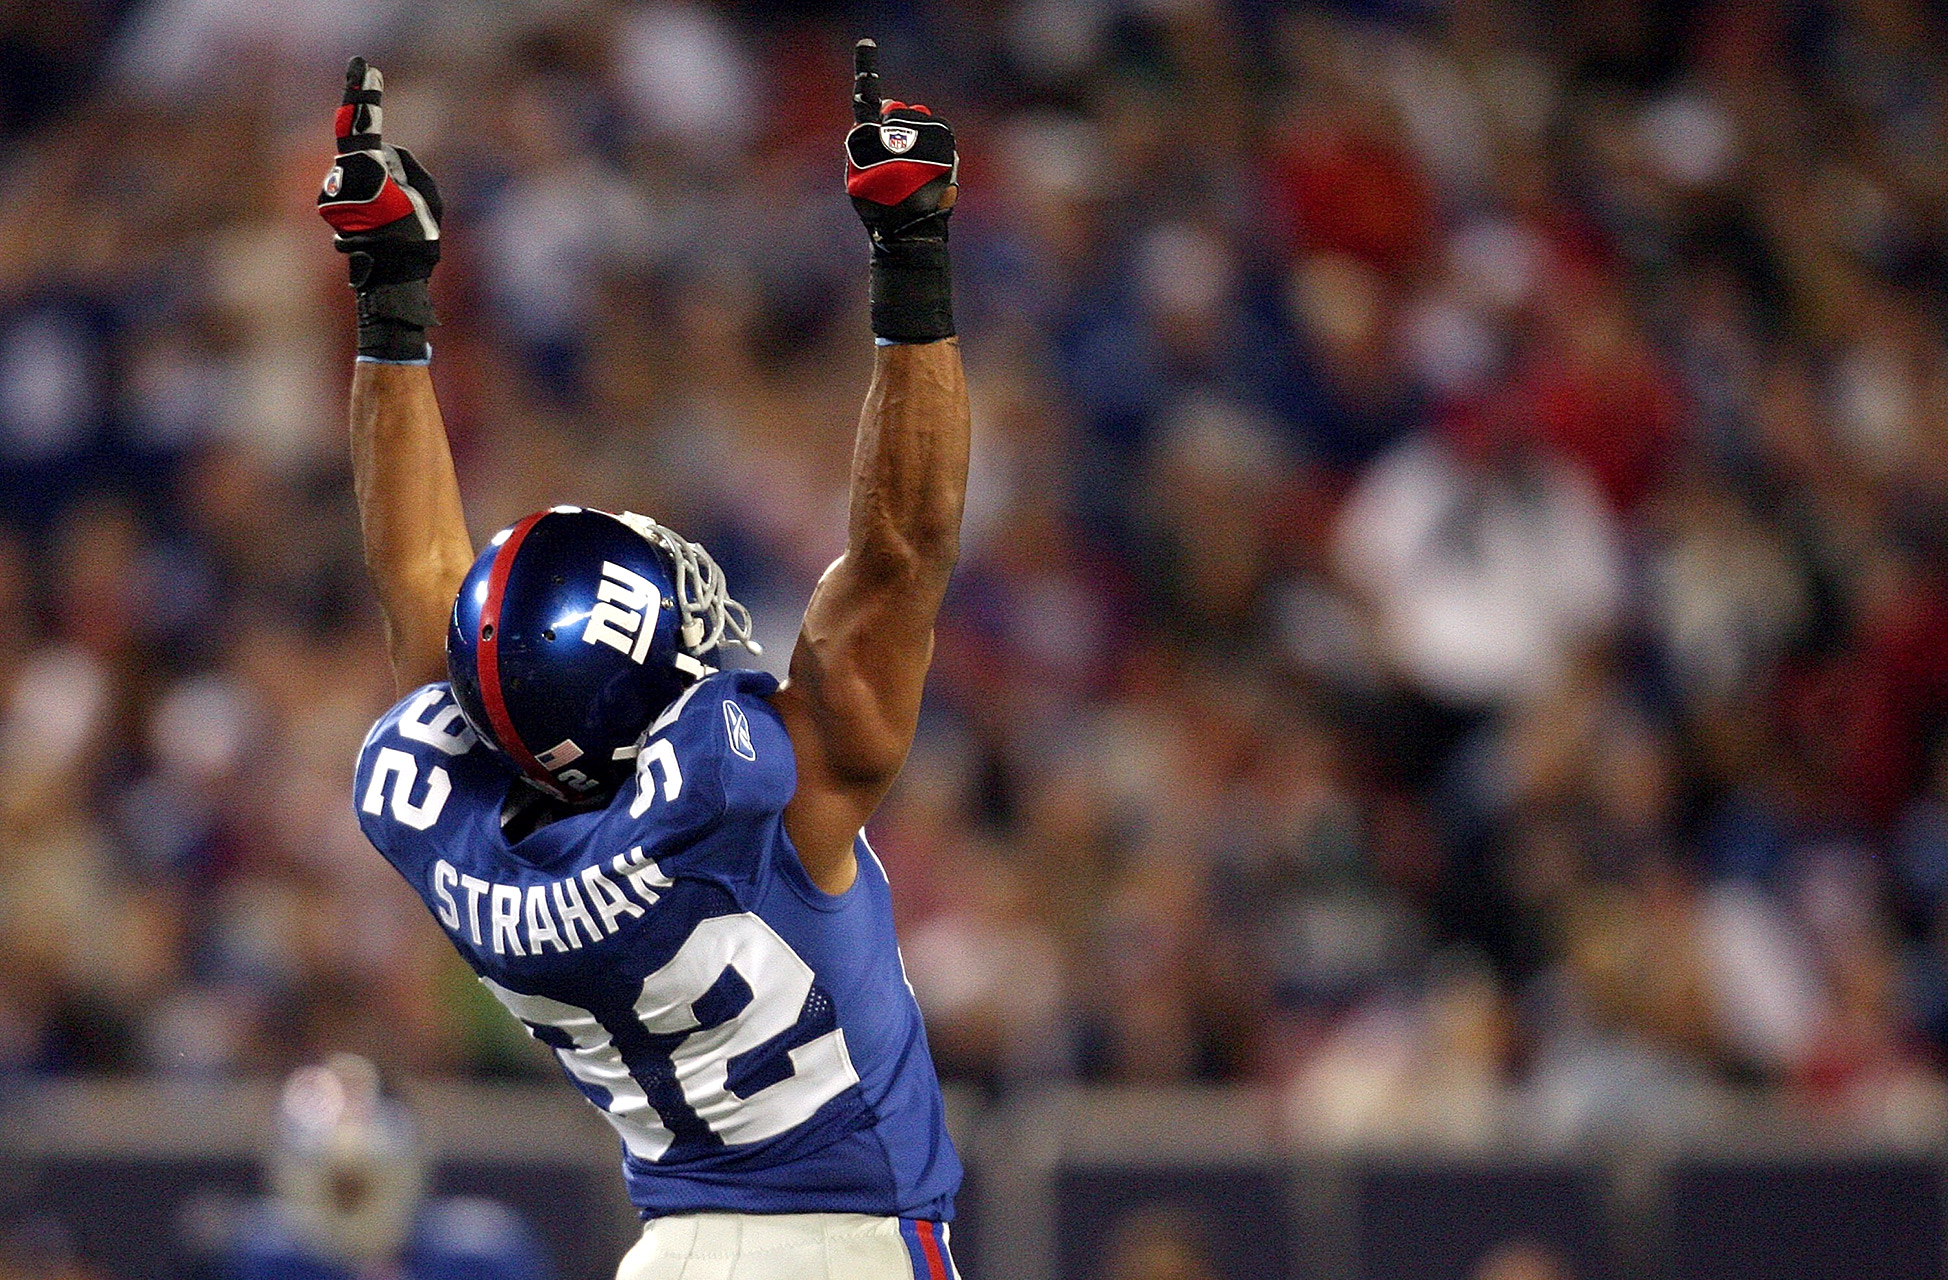 In addition to his tackles and sacks, Michael Strahan was also an emotional leader for the Giants.